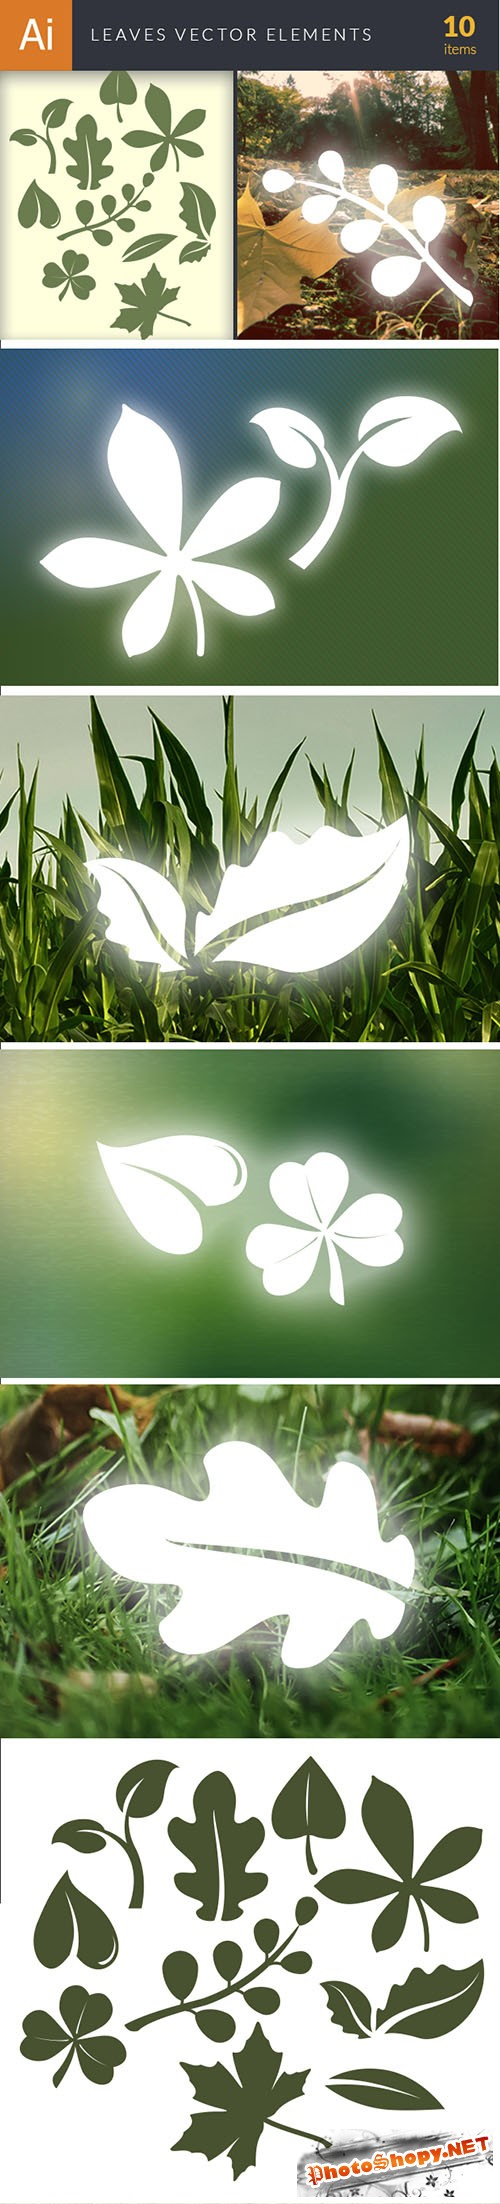 Simple Leaves Vector Elements Set 2